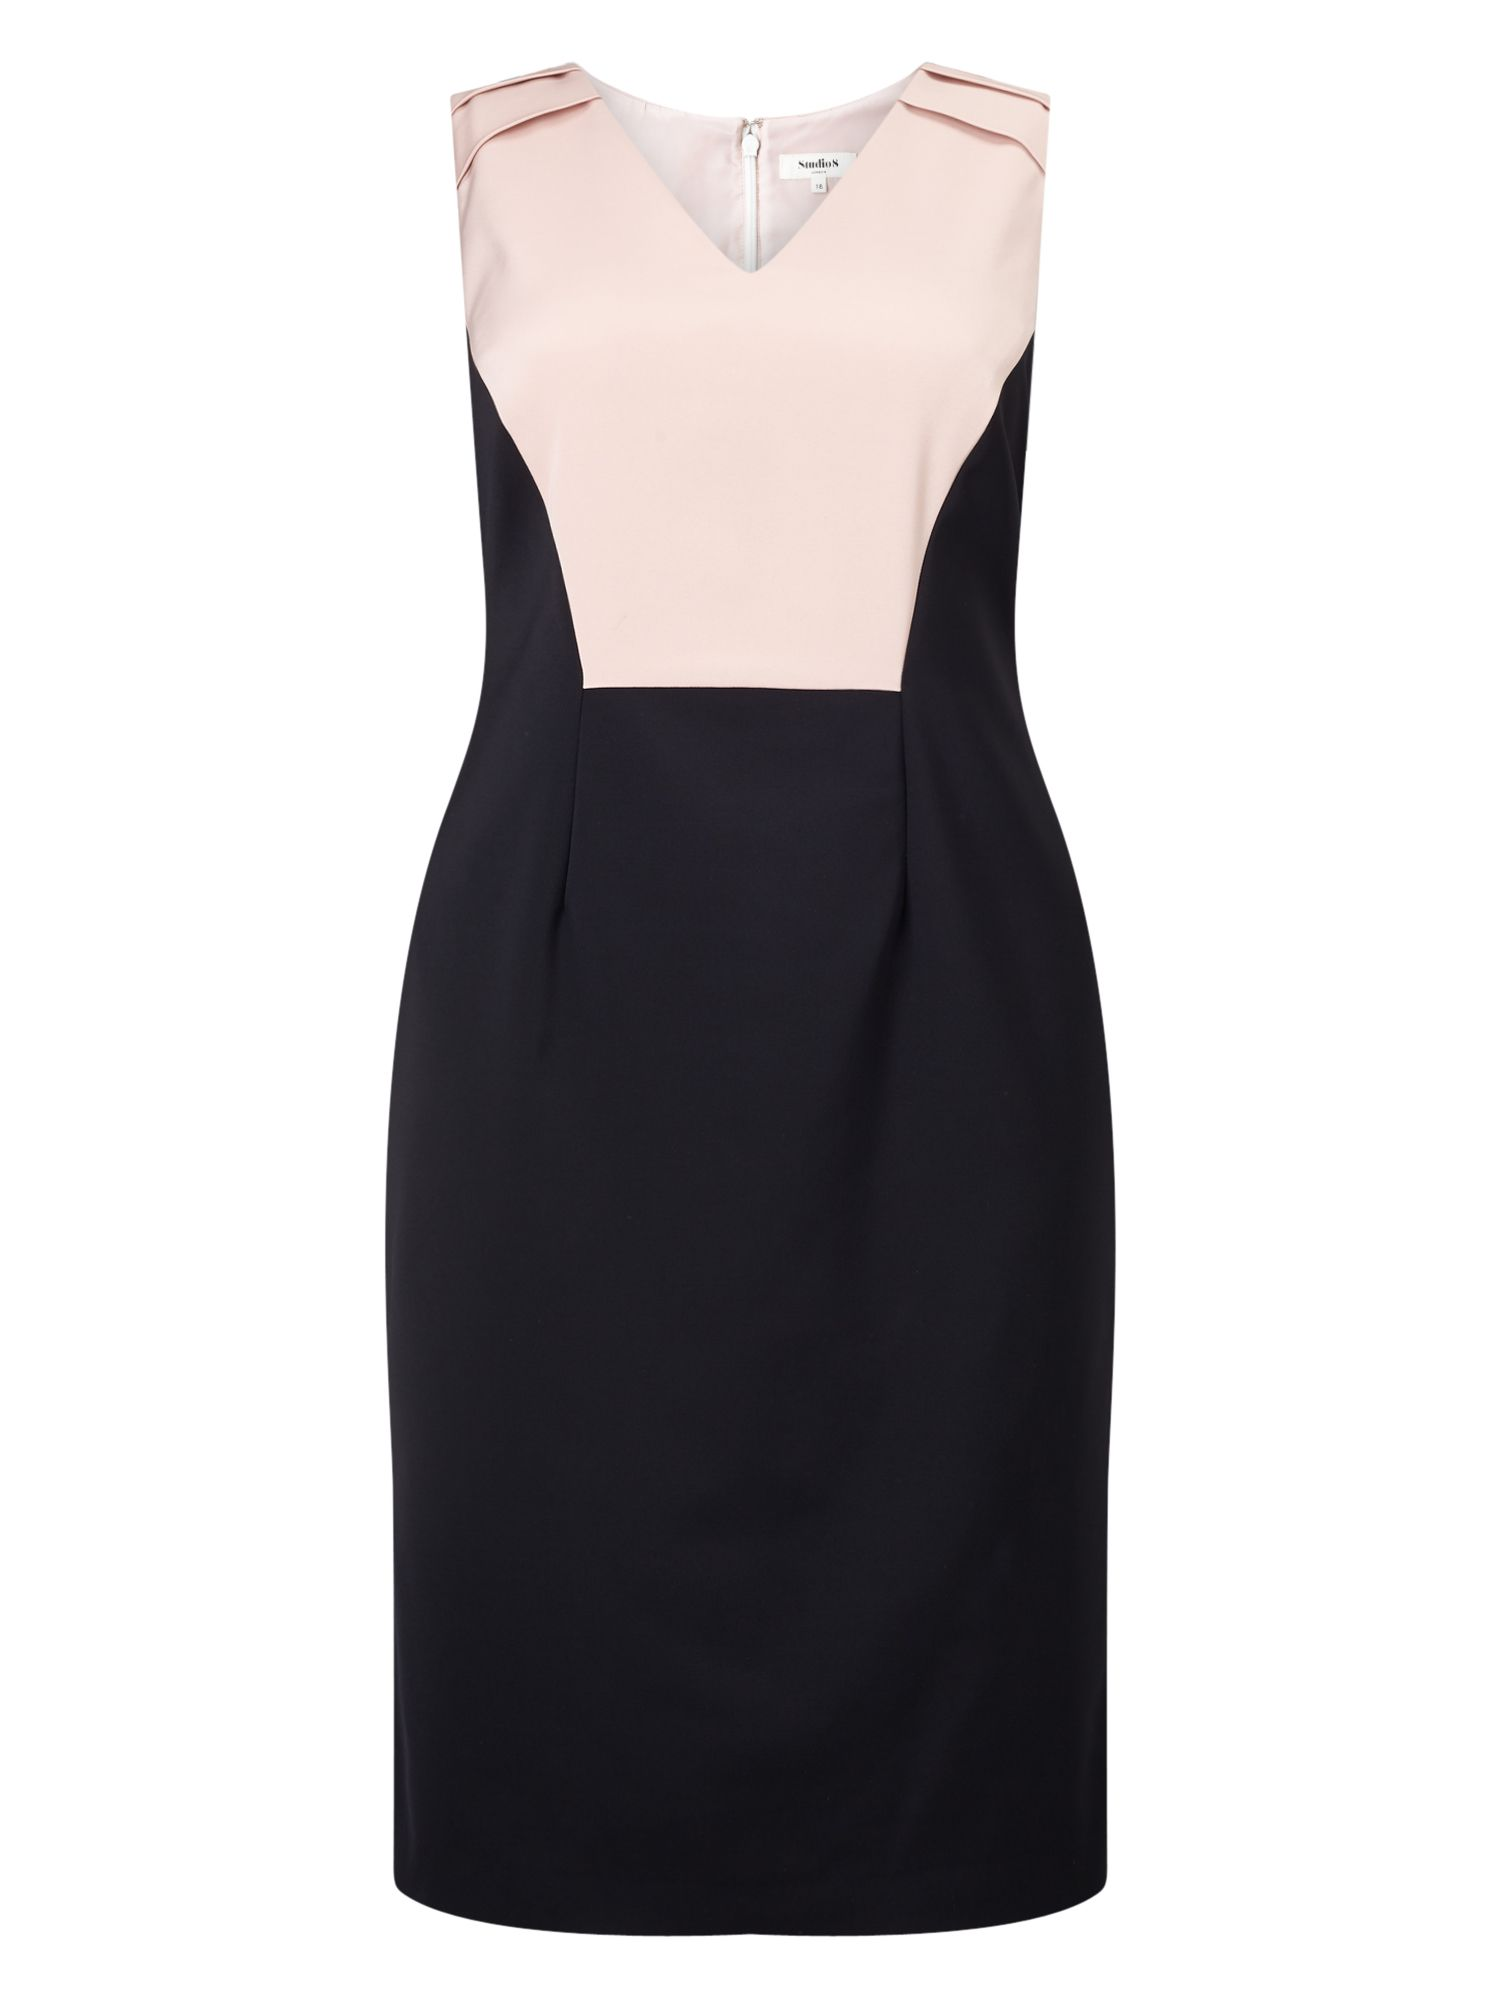 Studio 8 Imogen Dress, Black